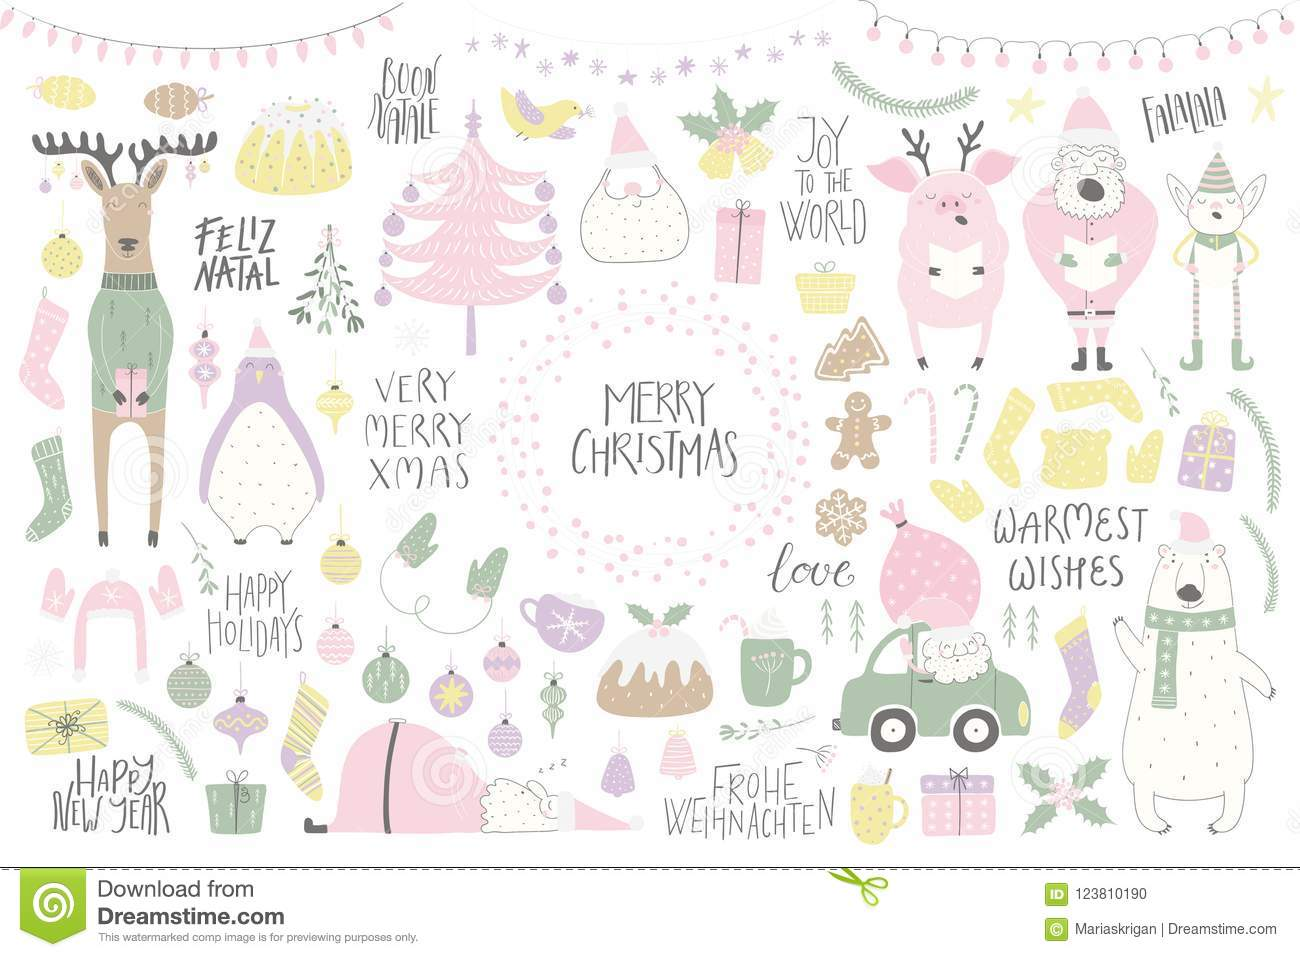 Big Christmas Set With Funny Characters Bear Penguin Reindeer Pig Santa Elf Tree Food Quotes Isolated Objects On White